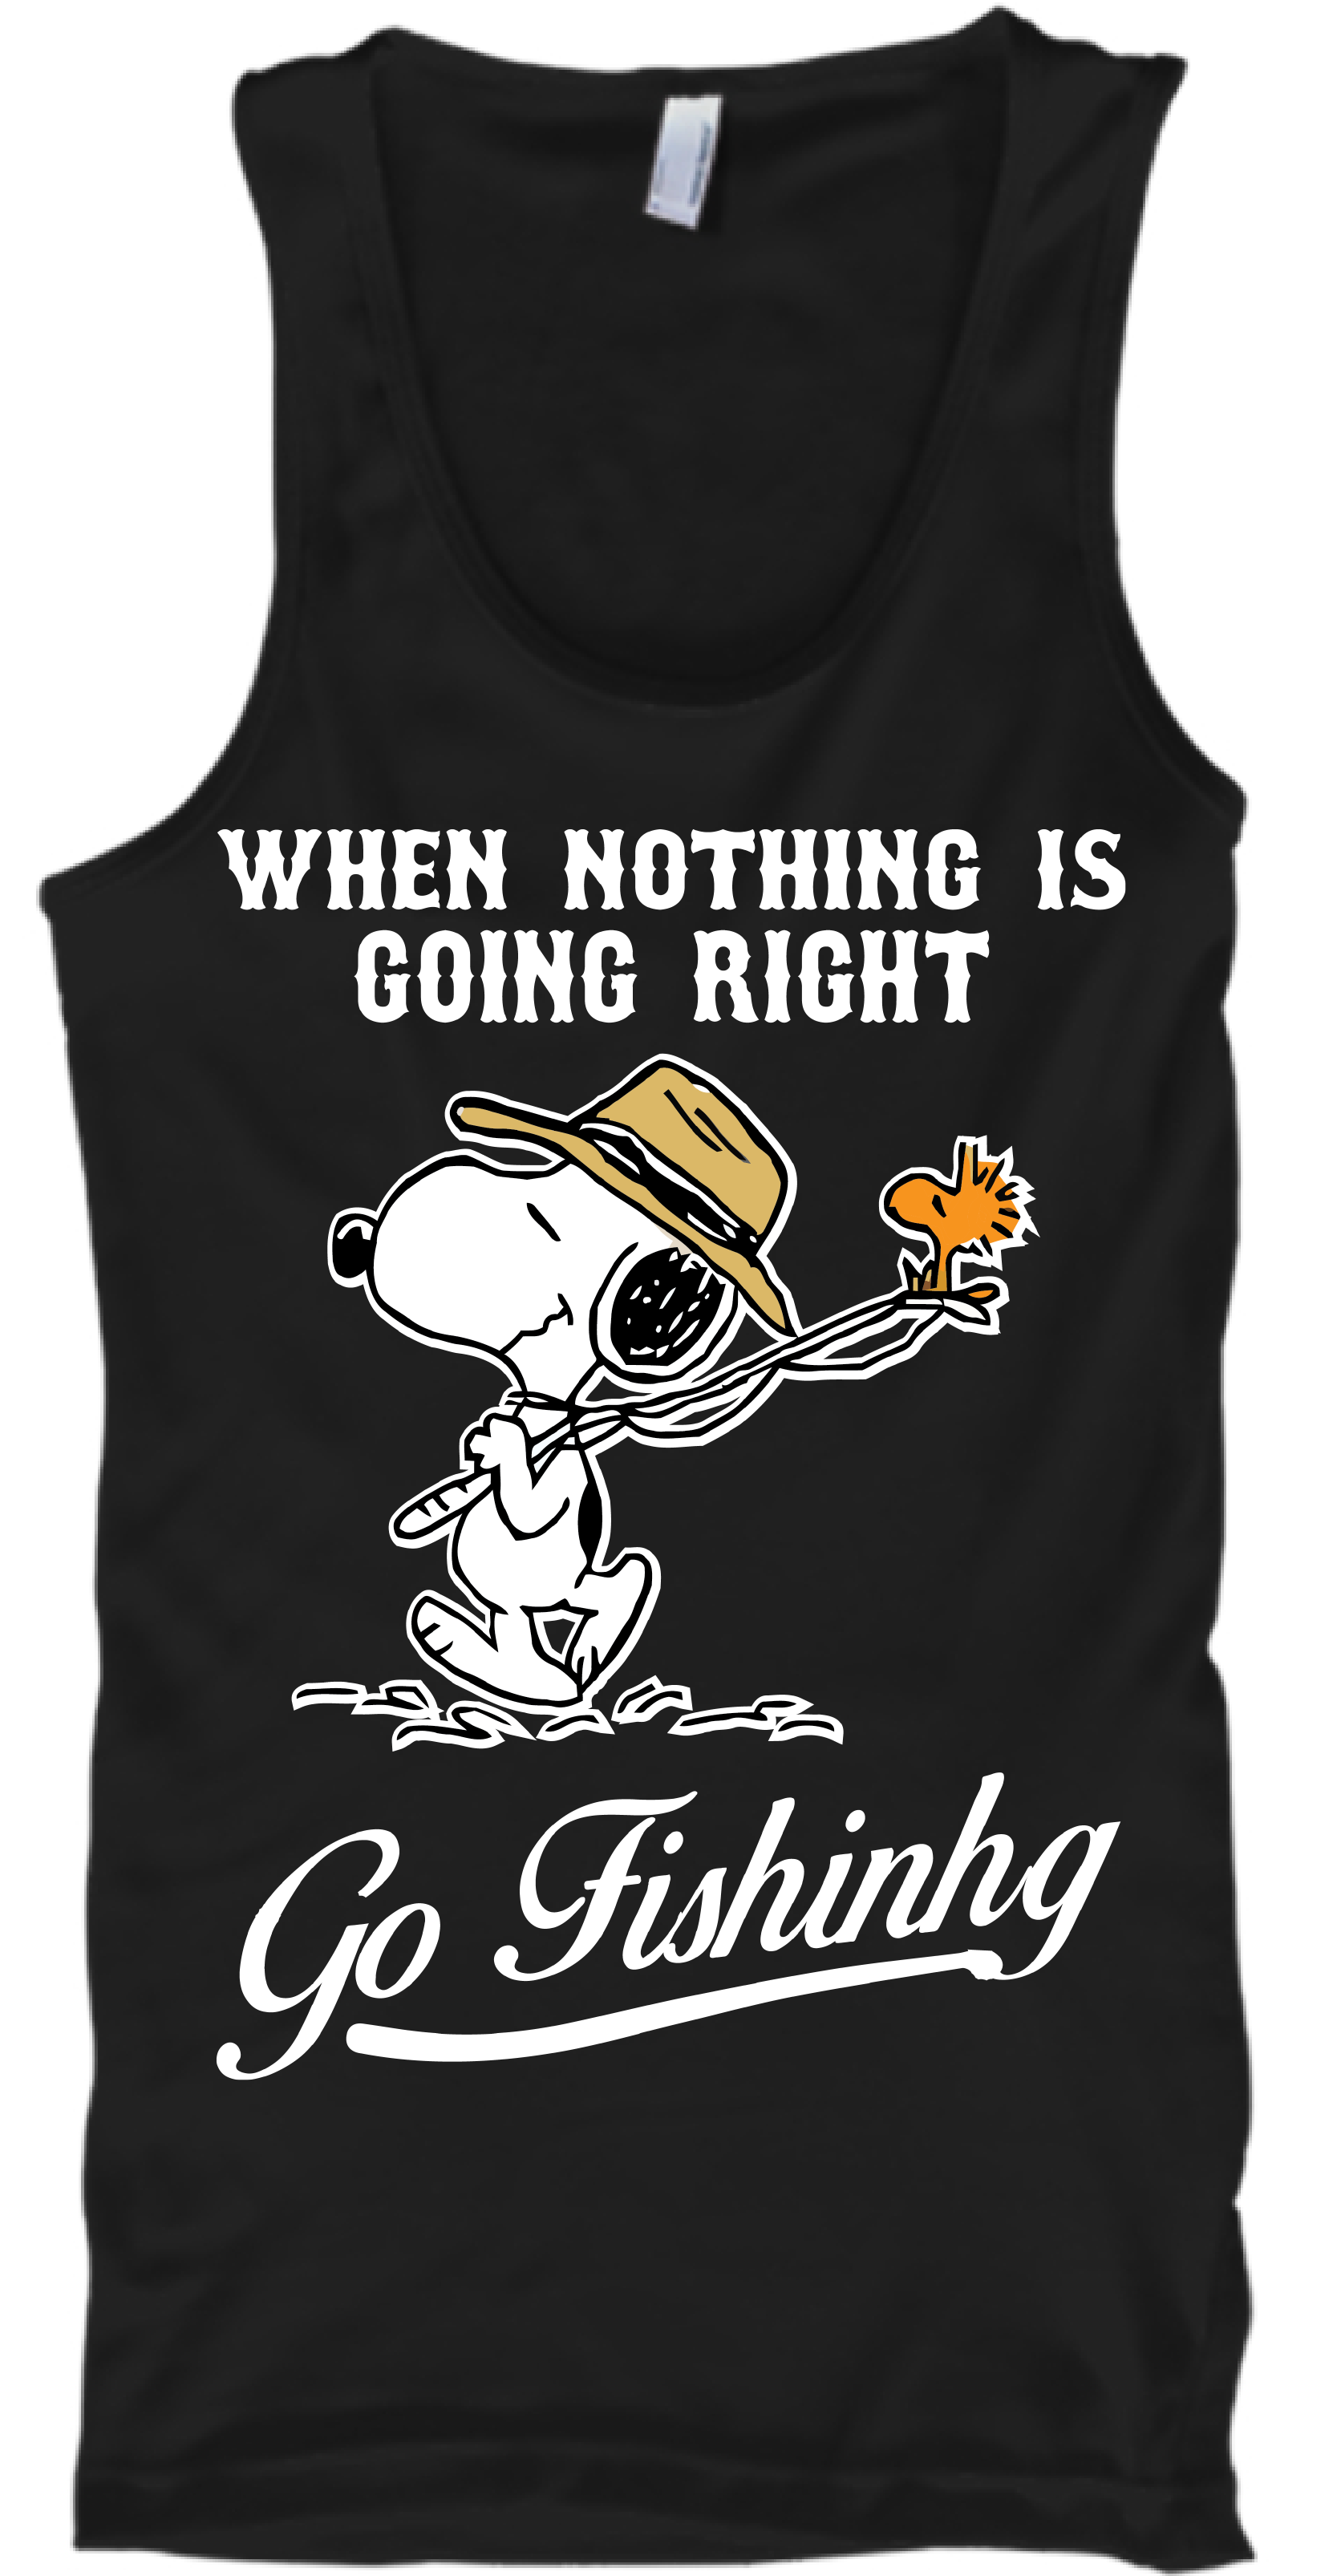 Mens tank top funny bass fishing design sleeveless tee shirt